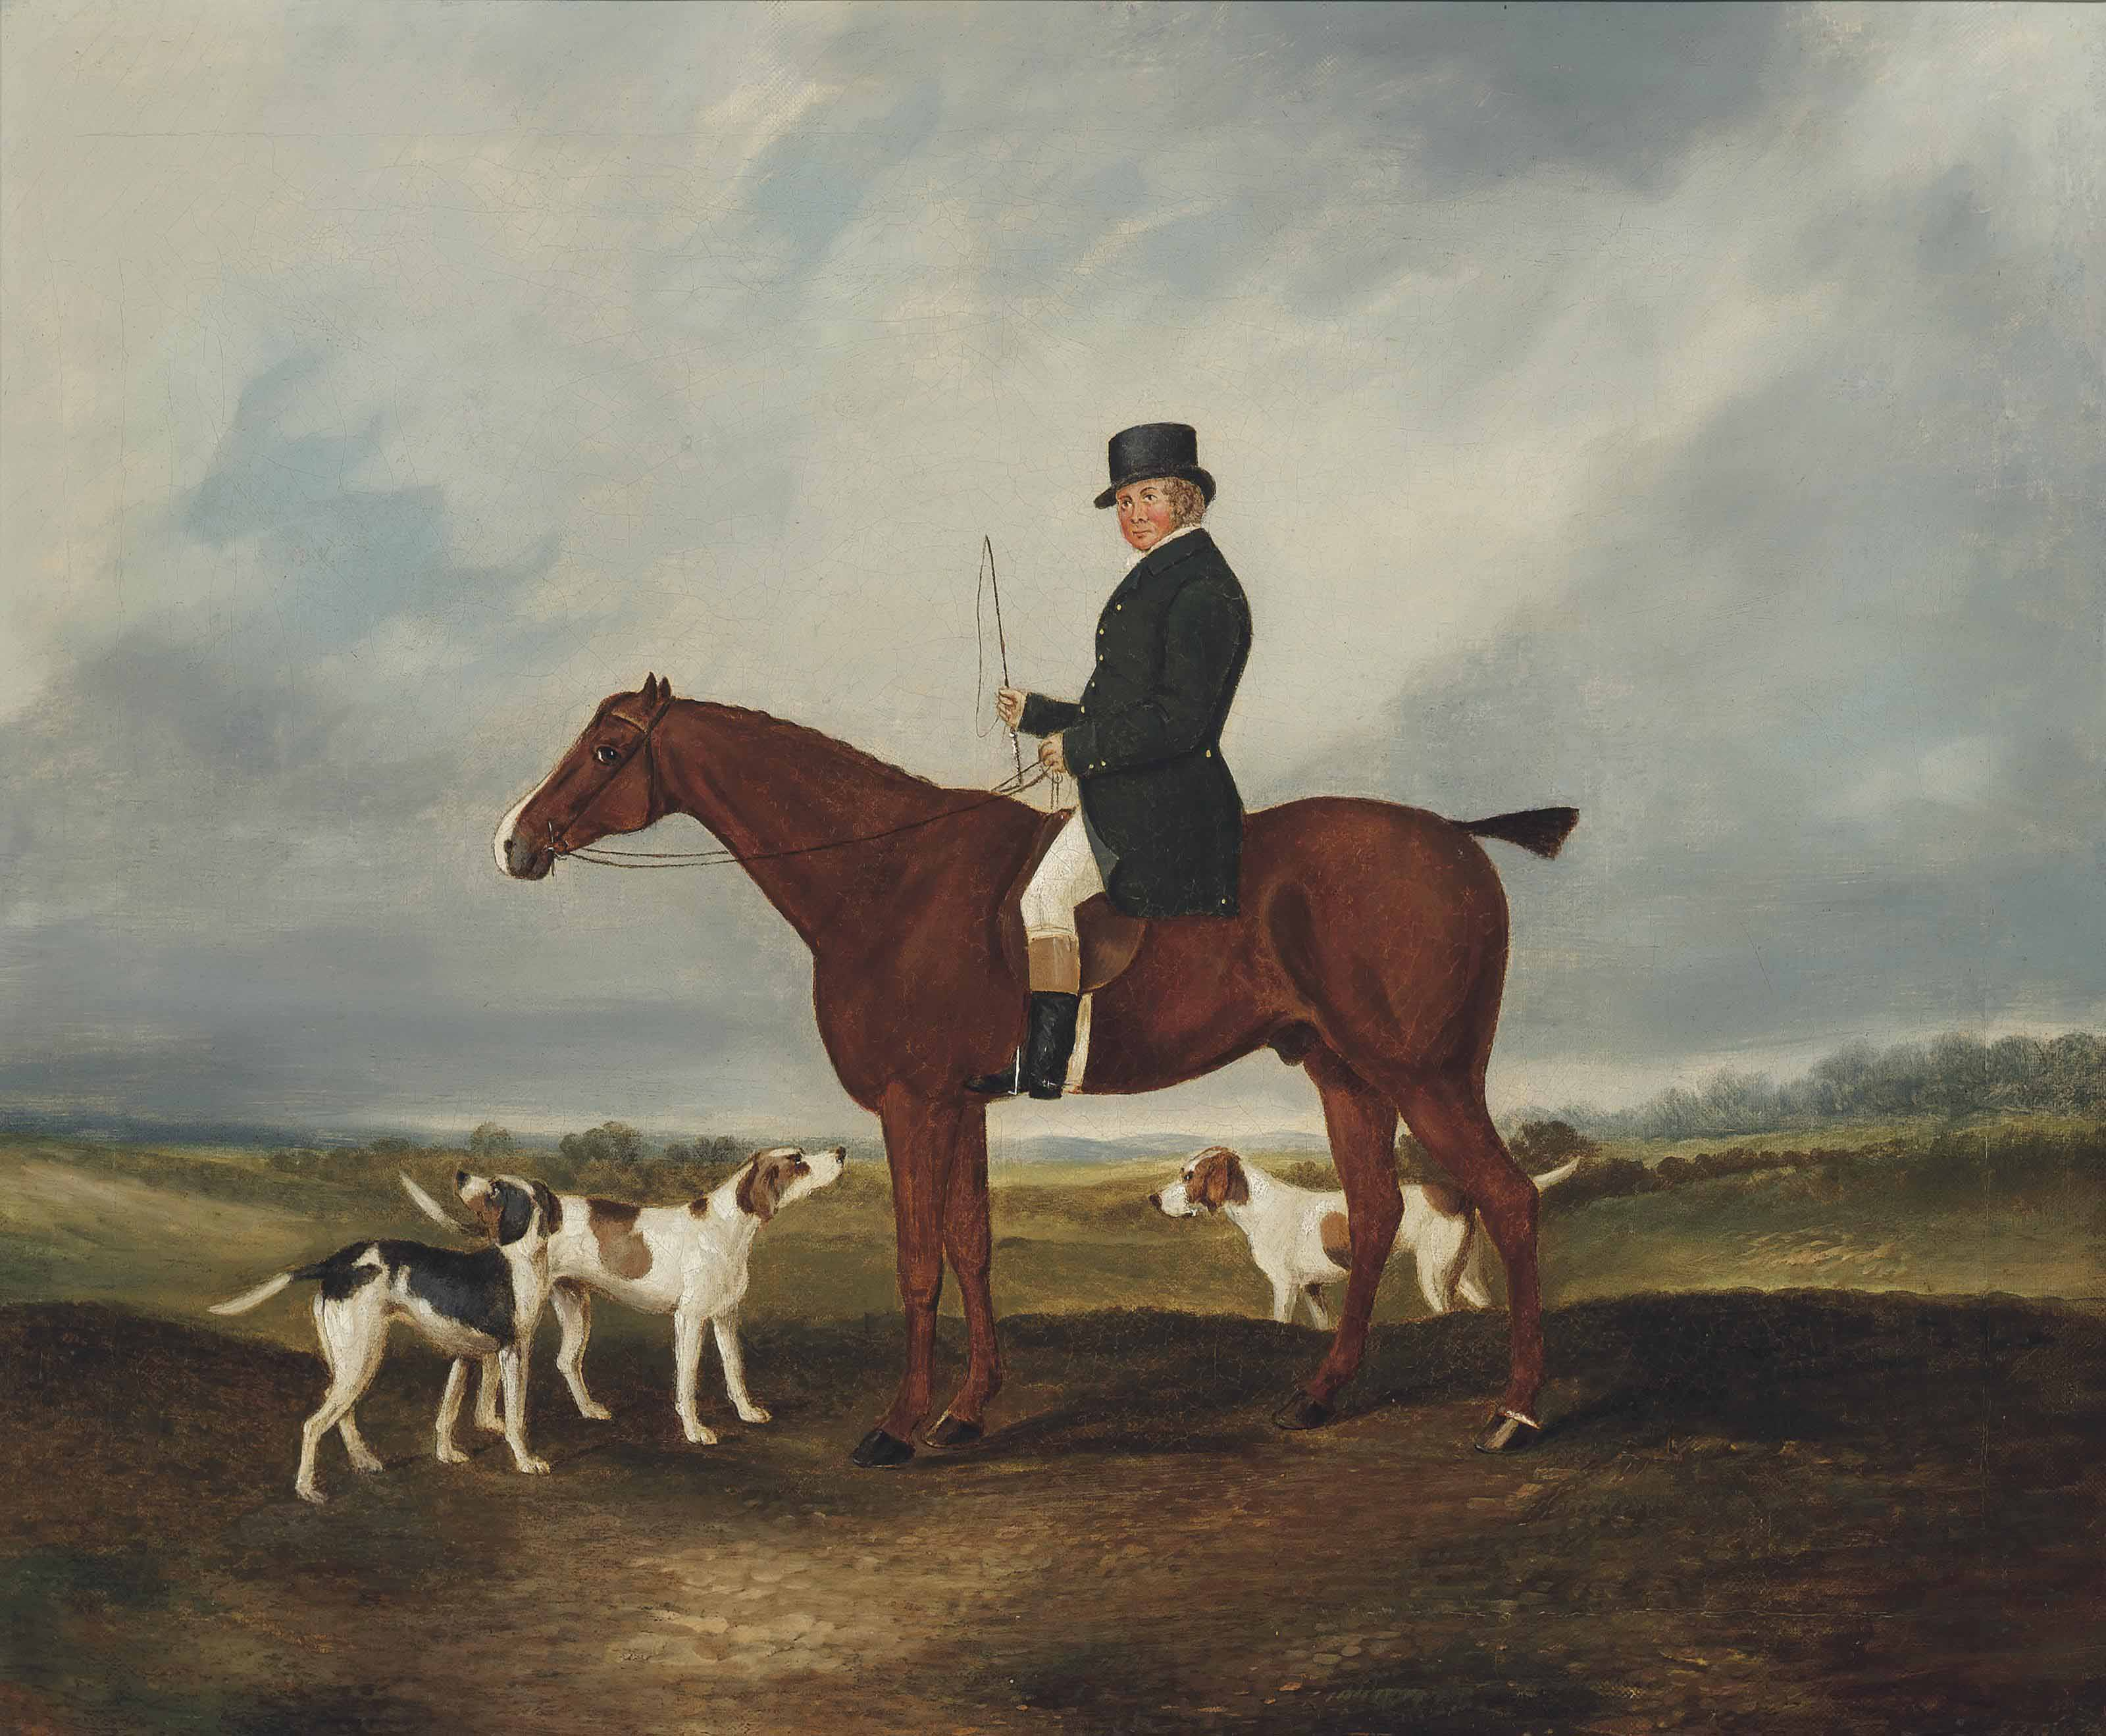 Thomas Rounding on his favourite hunter, Spankaway, with Gladsome, Governess and Syren, staghounds of the Epping Forest Hunt